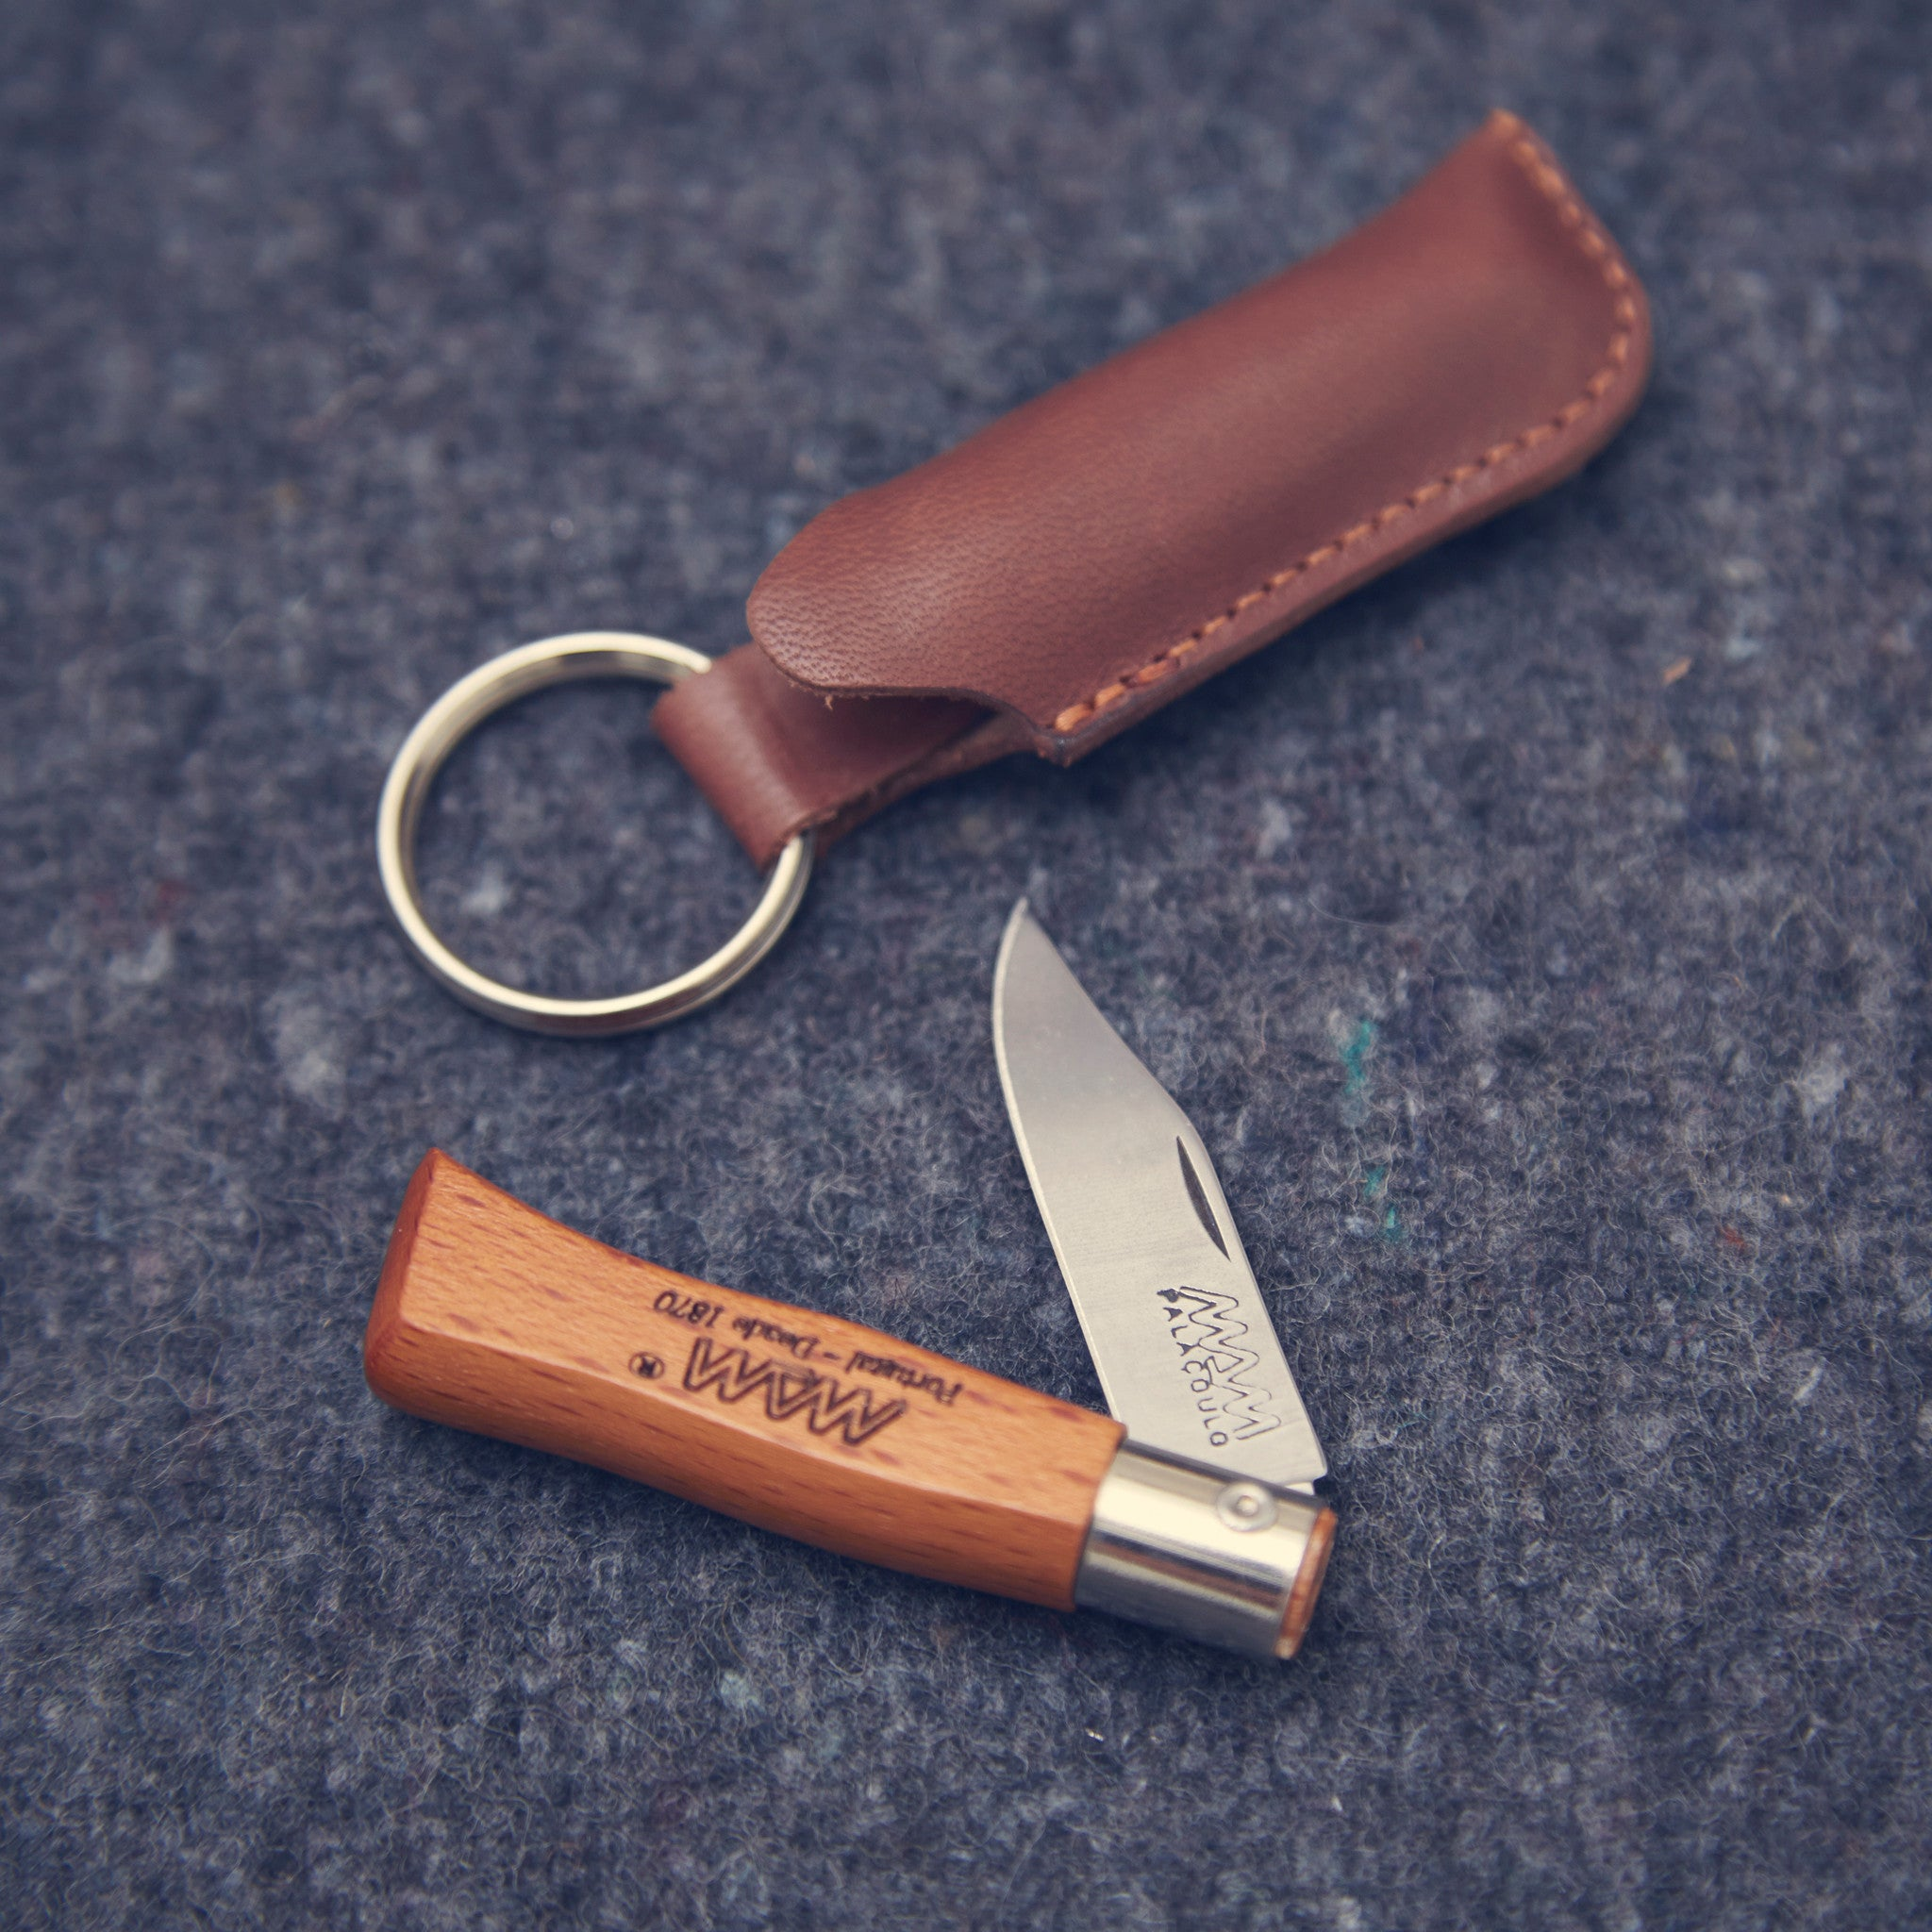 Mini Knife with Sheath